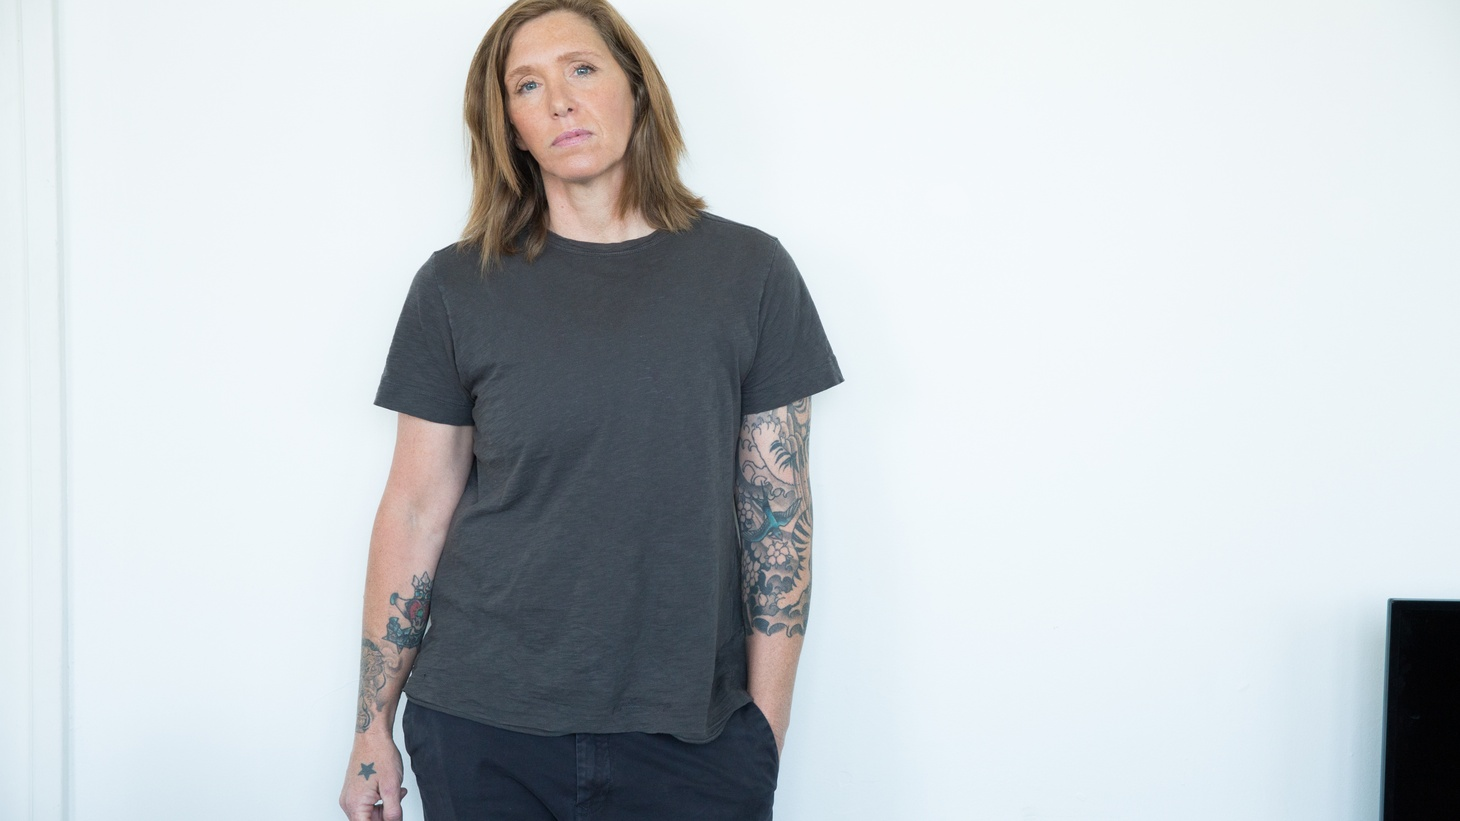 Patty Schemel, former drummer of the band Hole, says figuring out a Zoom Alcoholics Anonymous meeting wasn't easy, but it was worth it.